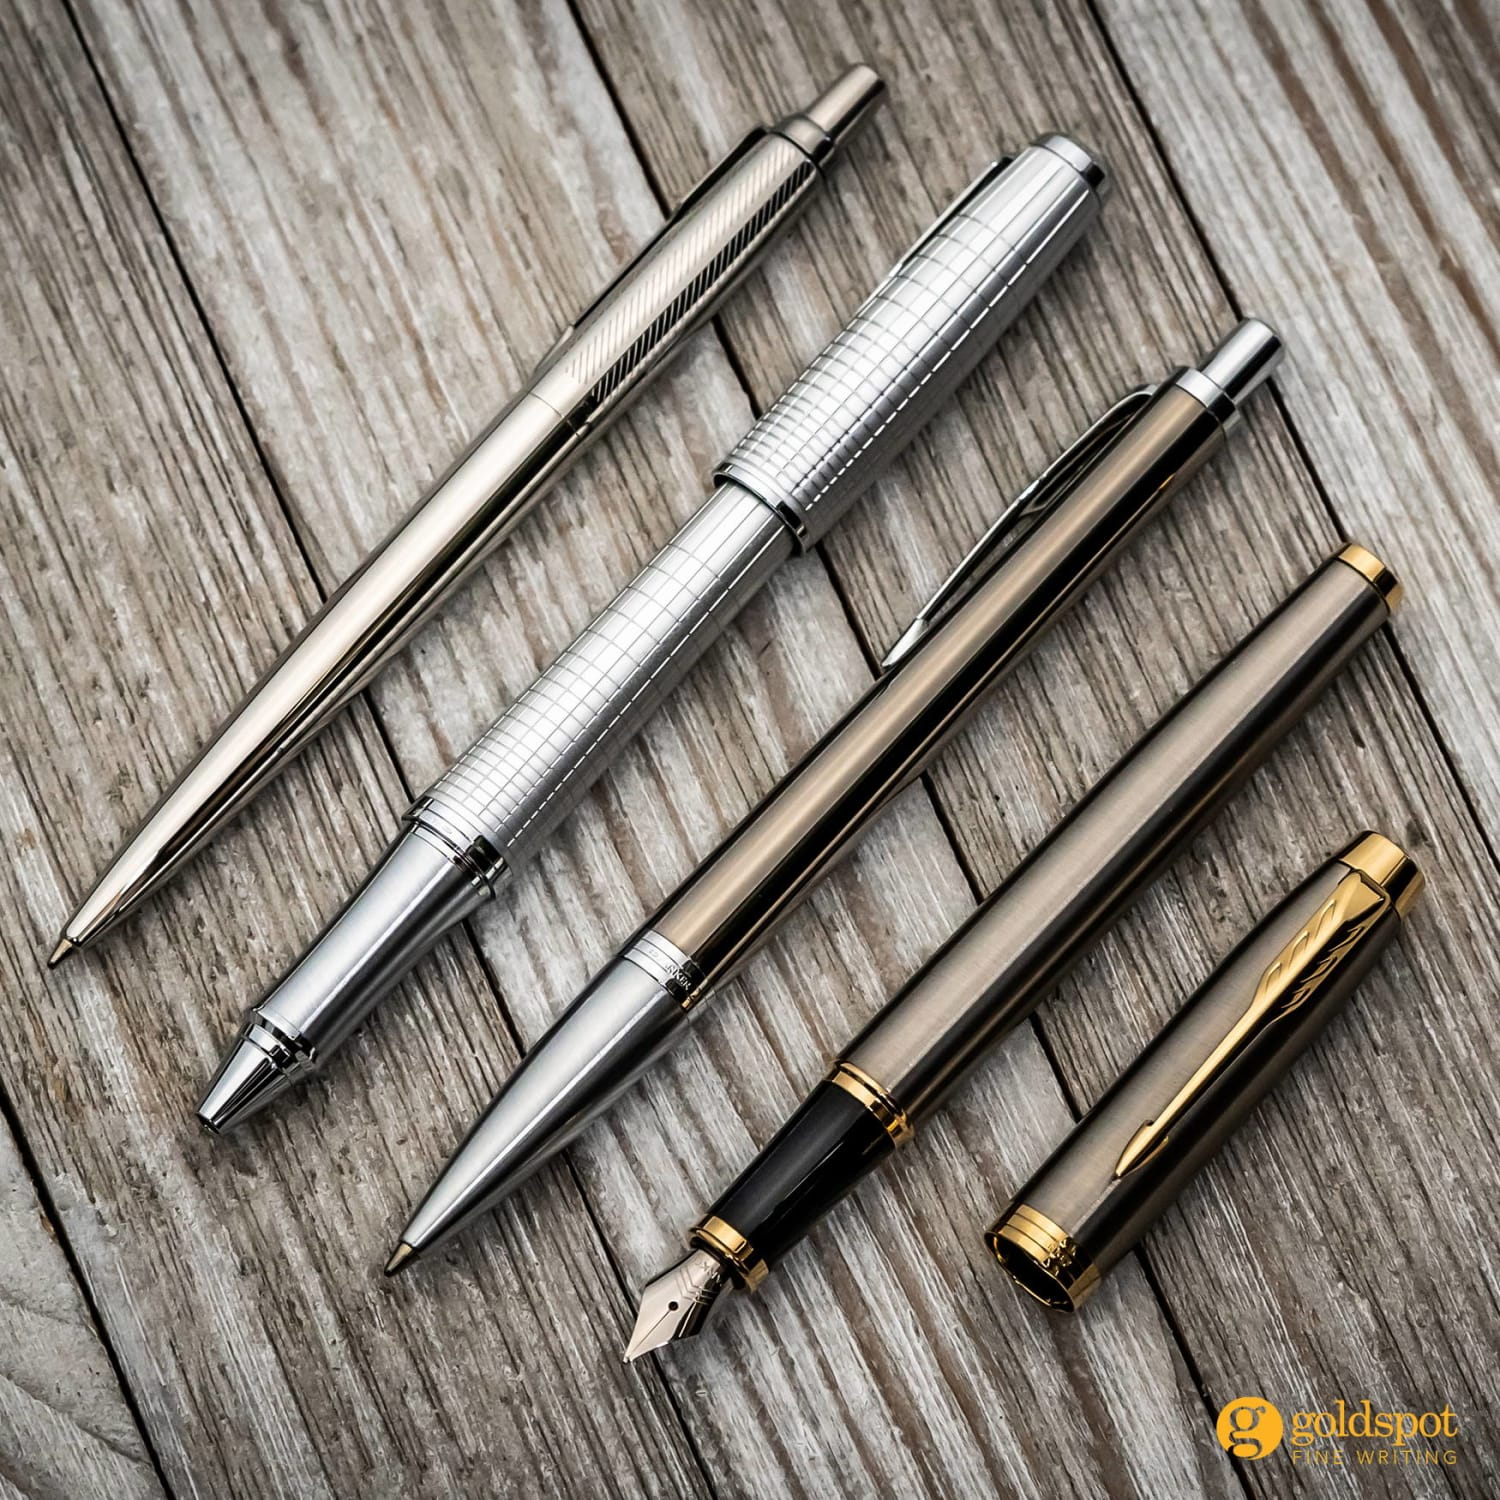 Mother's Day Pen Gifts 2021